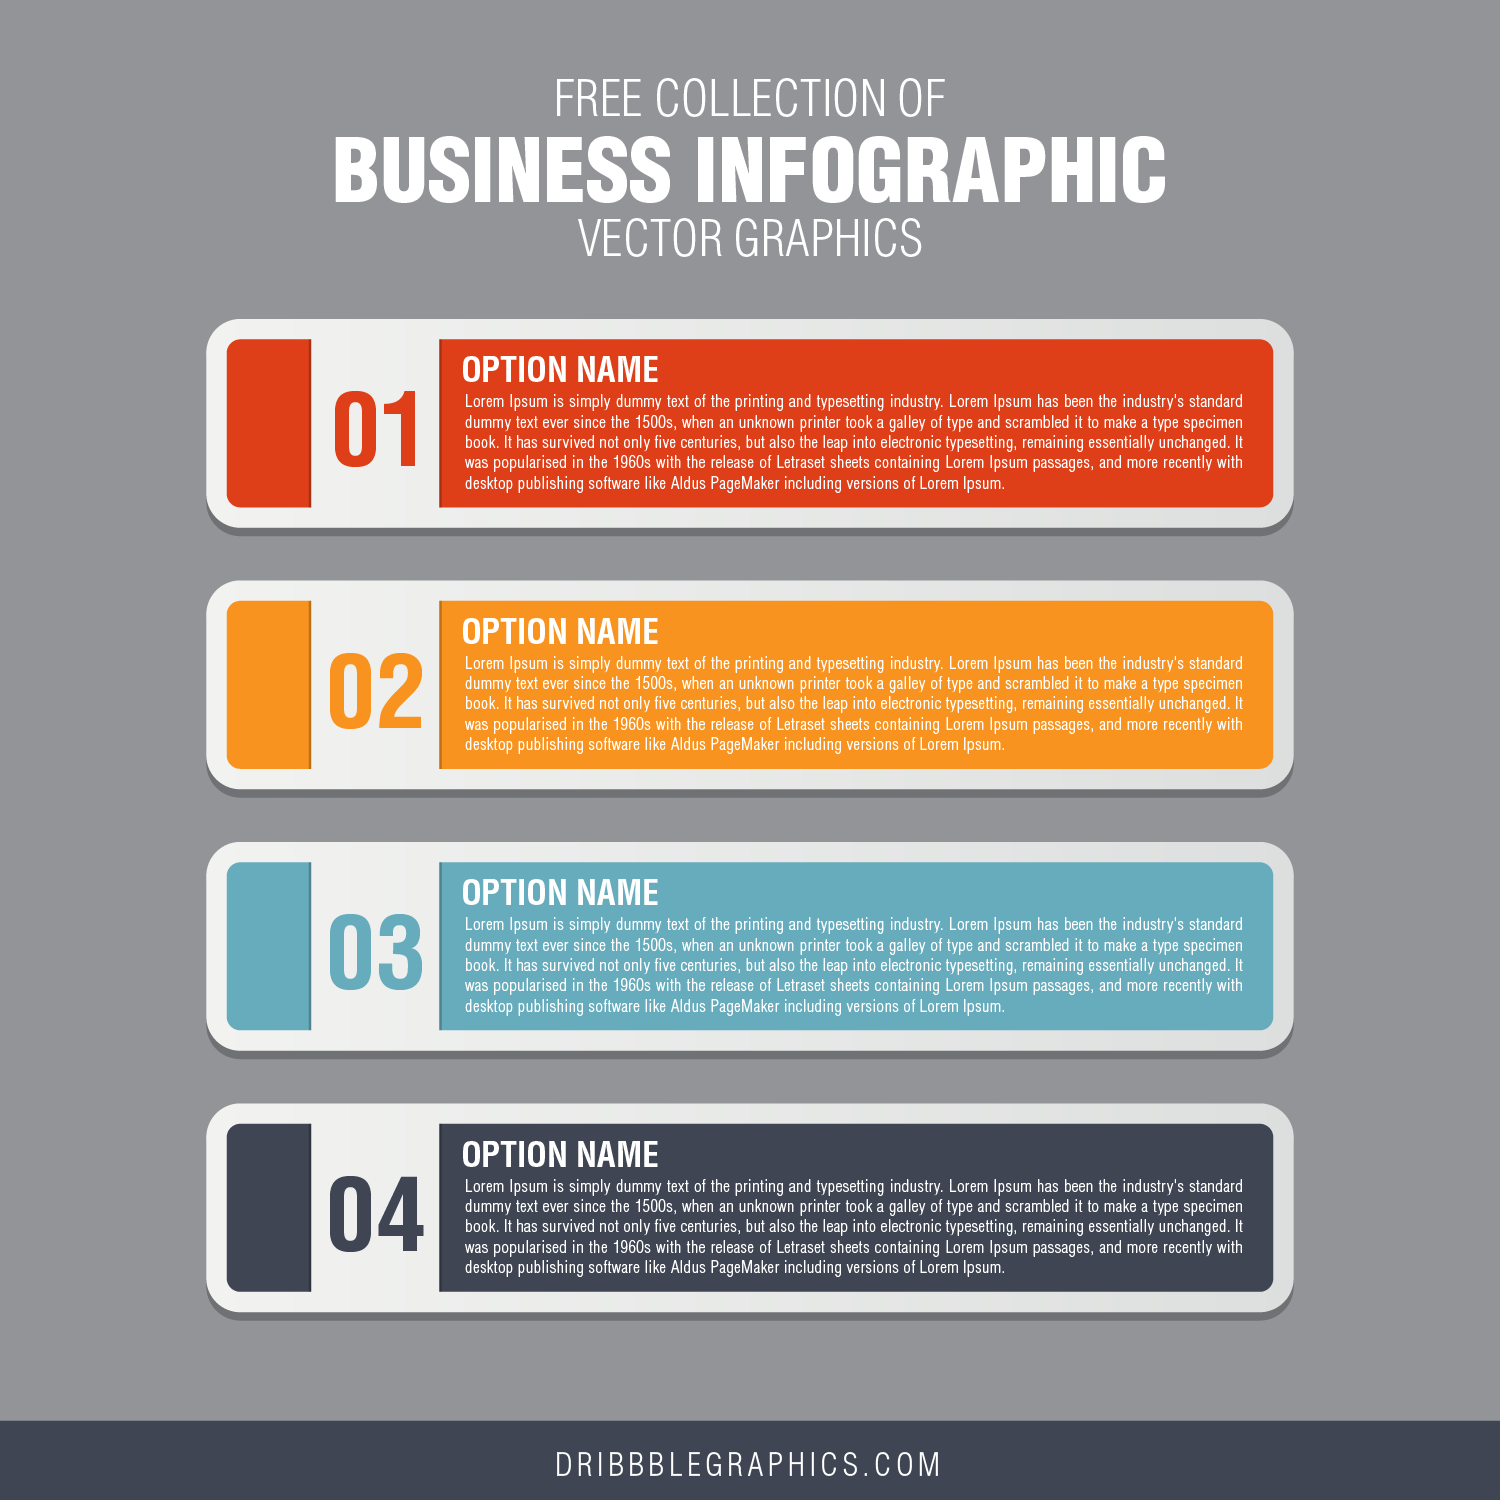 Free Collection of Business Infographic Vector Graphics-01